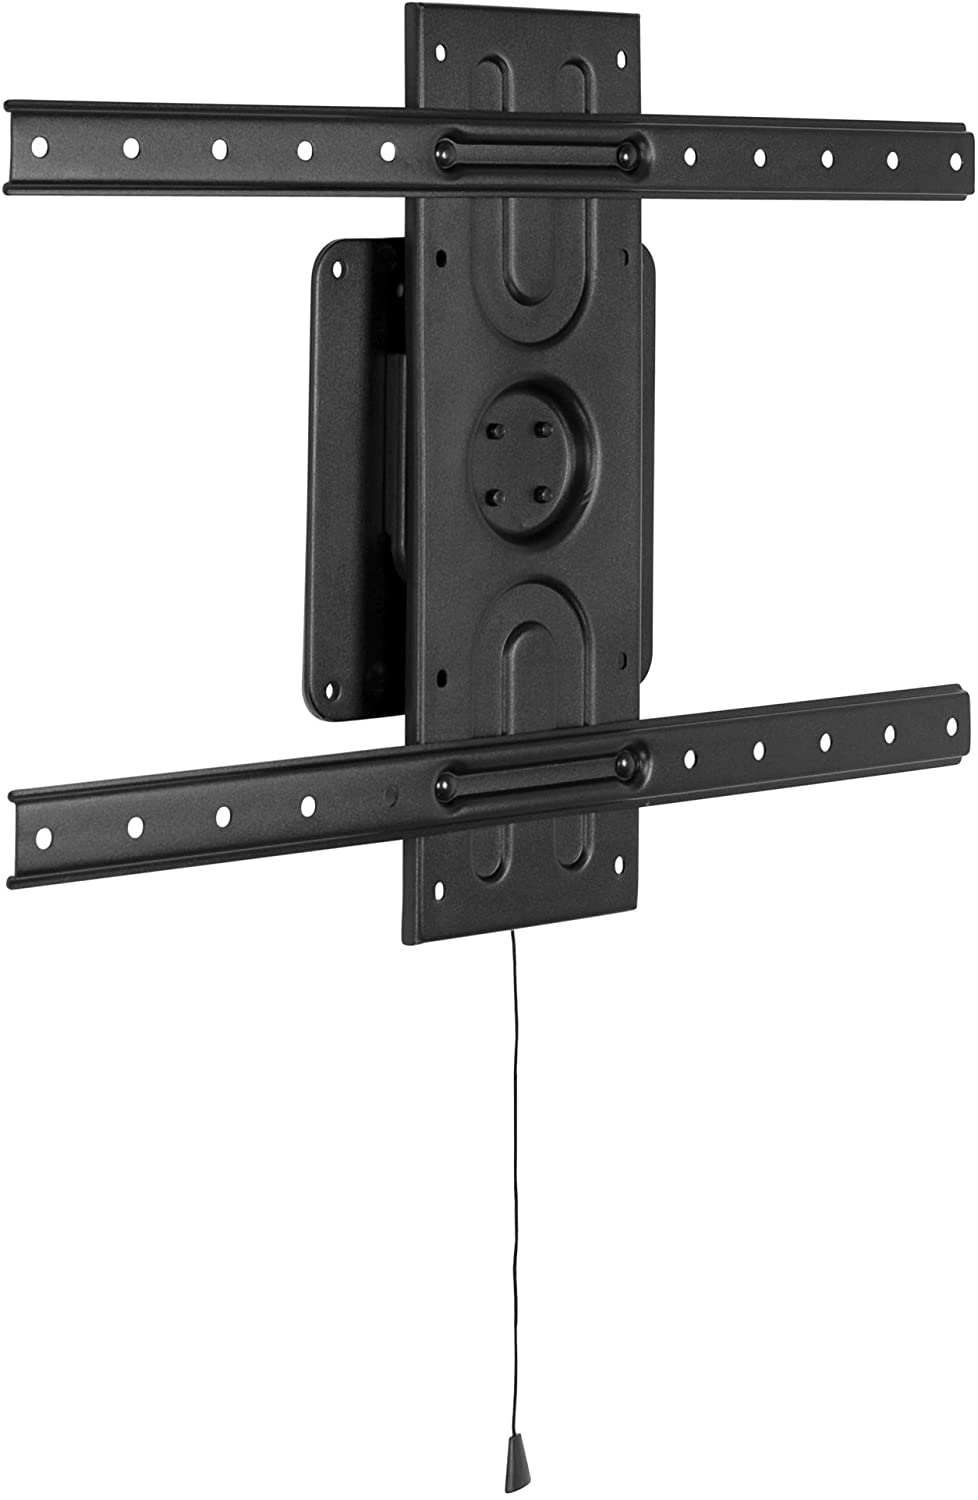 Mount-It! Landscape to Portrait Rotating TV Wall Mount | Vertical Flush TV Mount with 360 Degree Rotation | Fits VESA Up to 600x400, 37 to 80 Inch Screens, 110 Lbs Capacity